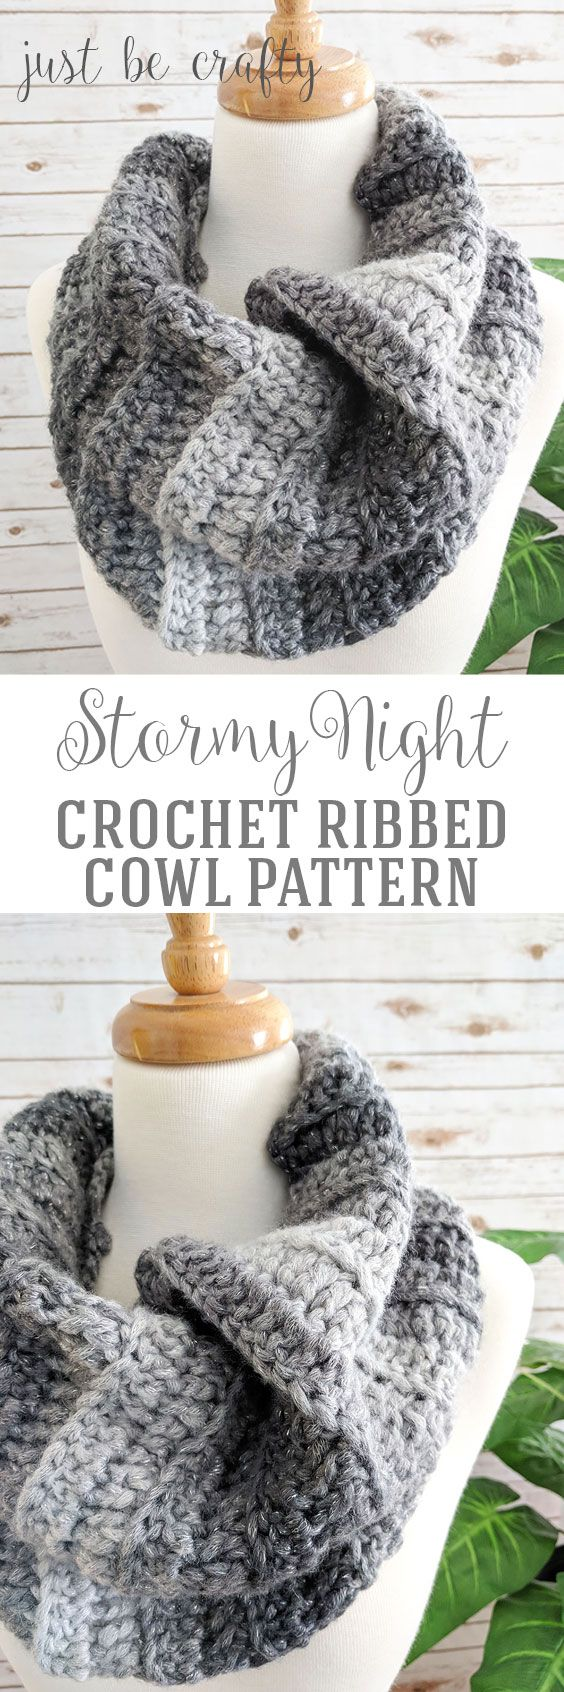 Stormy Night Crochet Ribbed Cowl Pattern | Free Pattern by Just Be Crafty